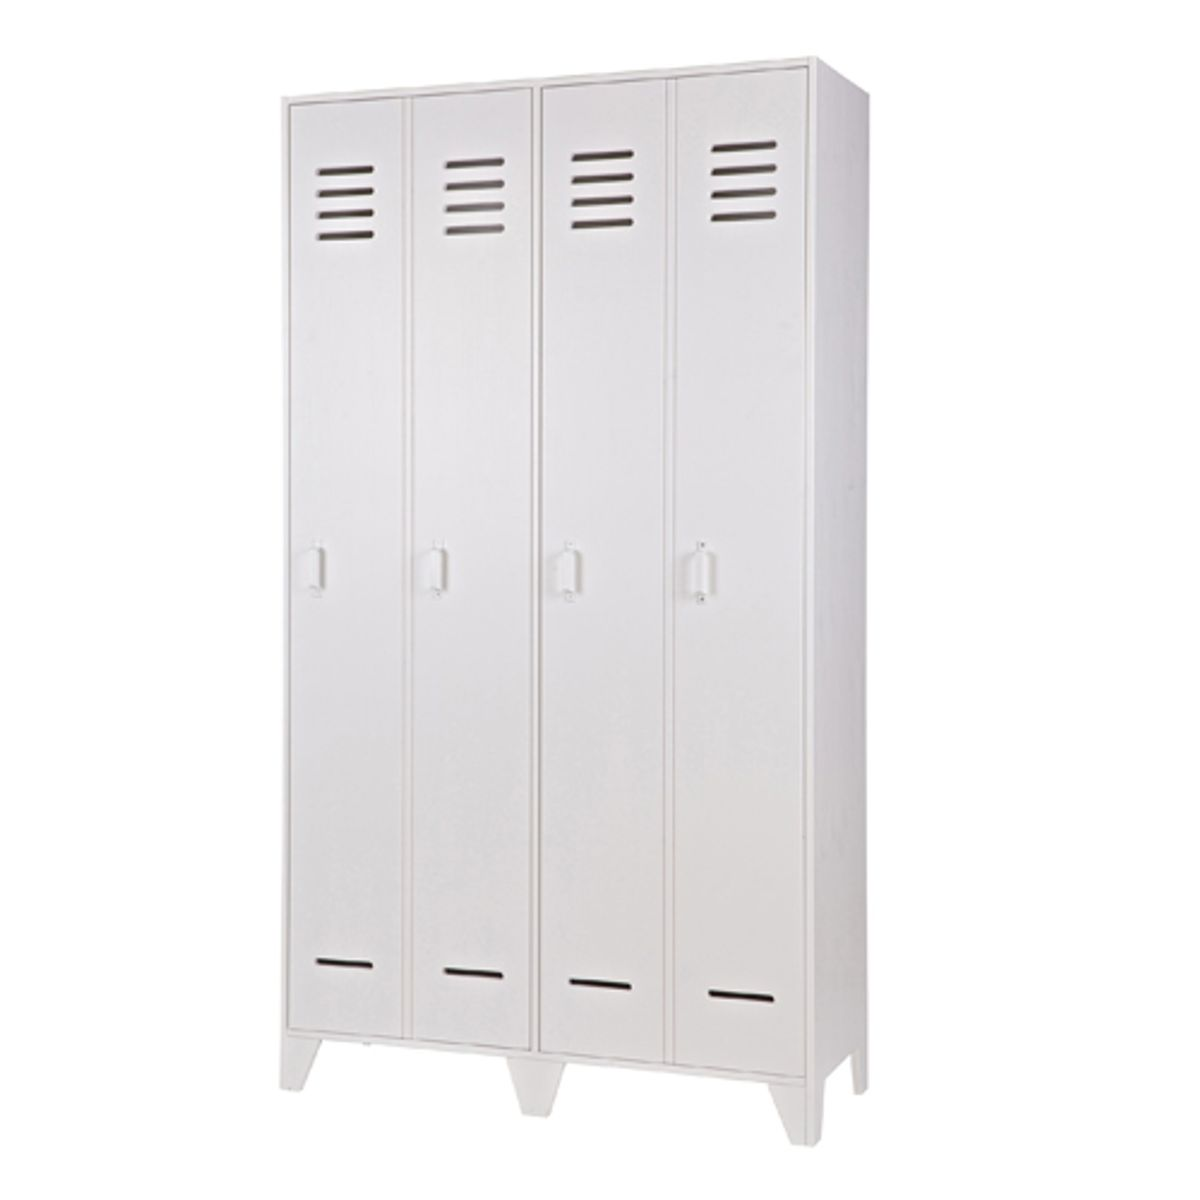 armoire type casier en bois blanc 2 portes doubles avec tag res stijn decoclico. Black Bedroom Furniture Sets. Home Design Ideas